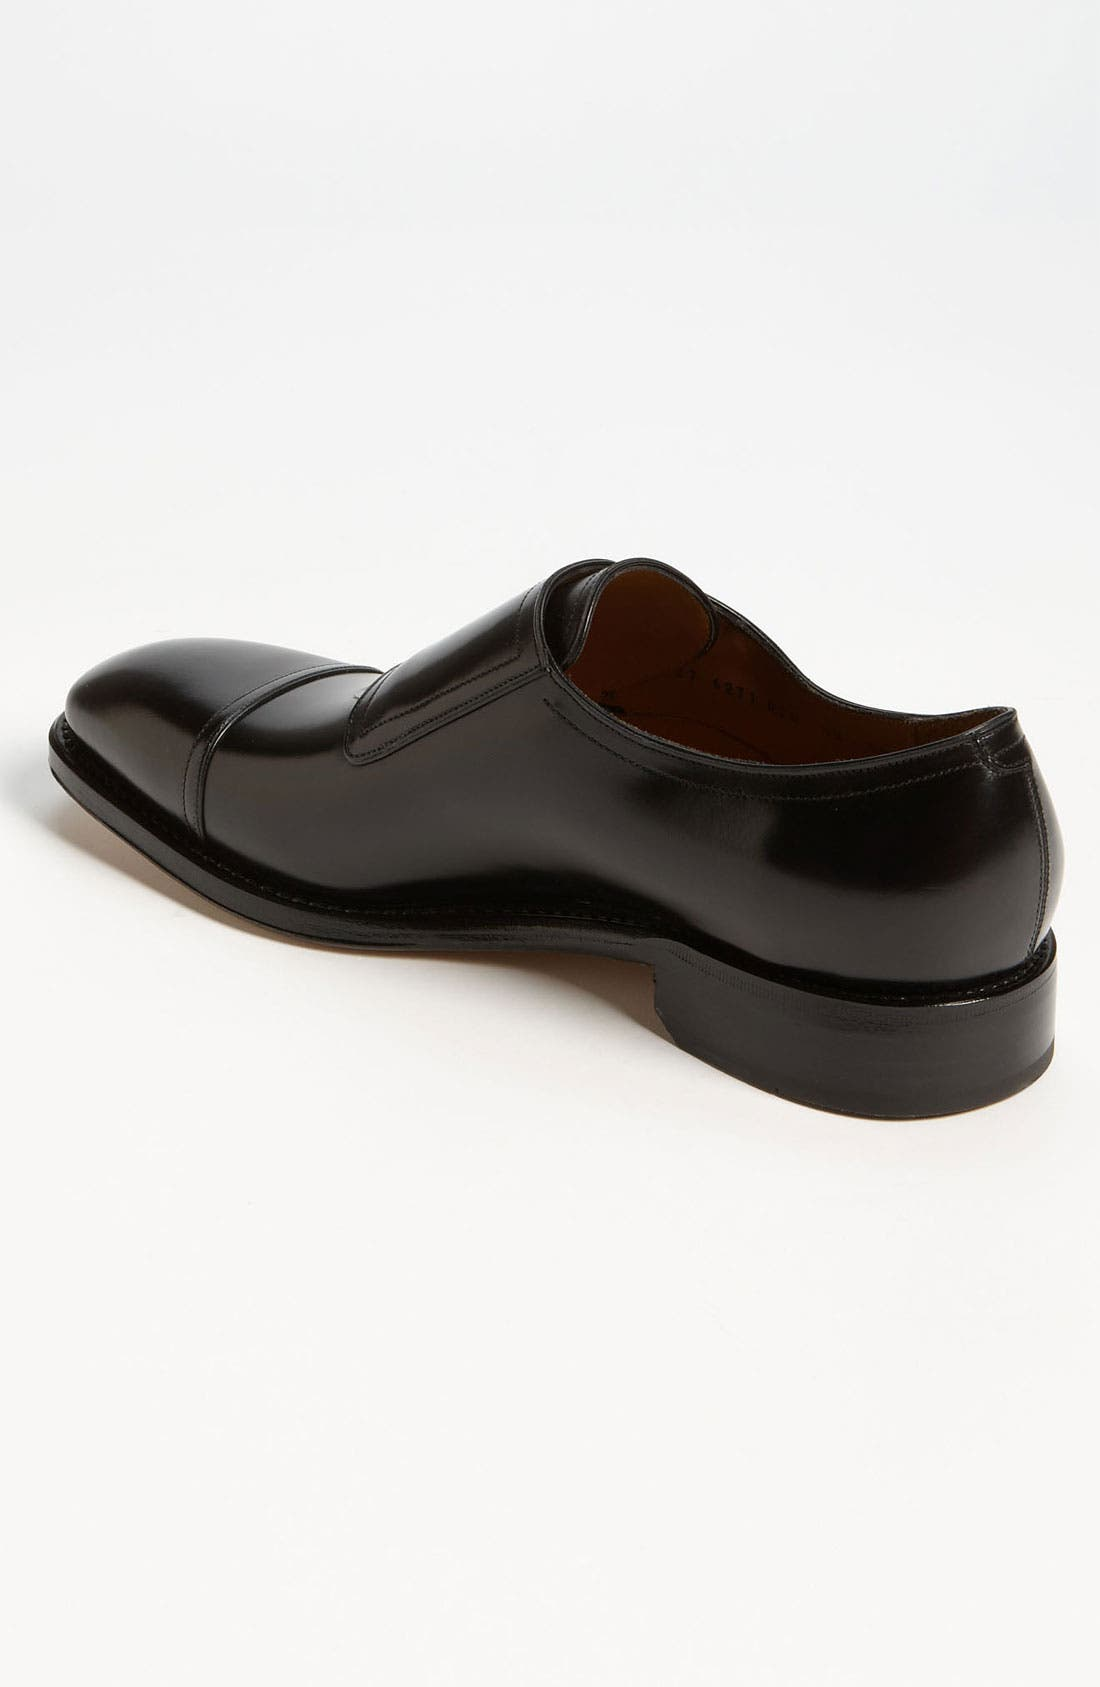 Alternate Image 2  - Salvatore Ferragamo 'Duran' Double Monk Strap Slip-On